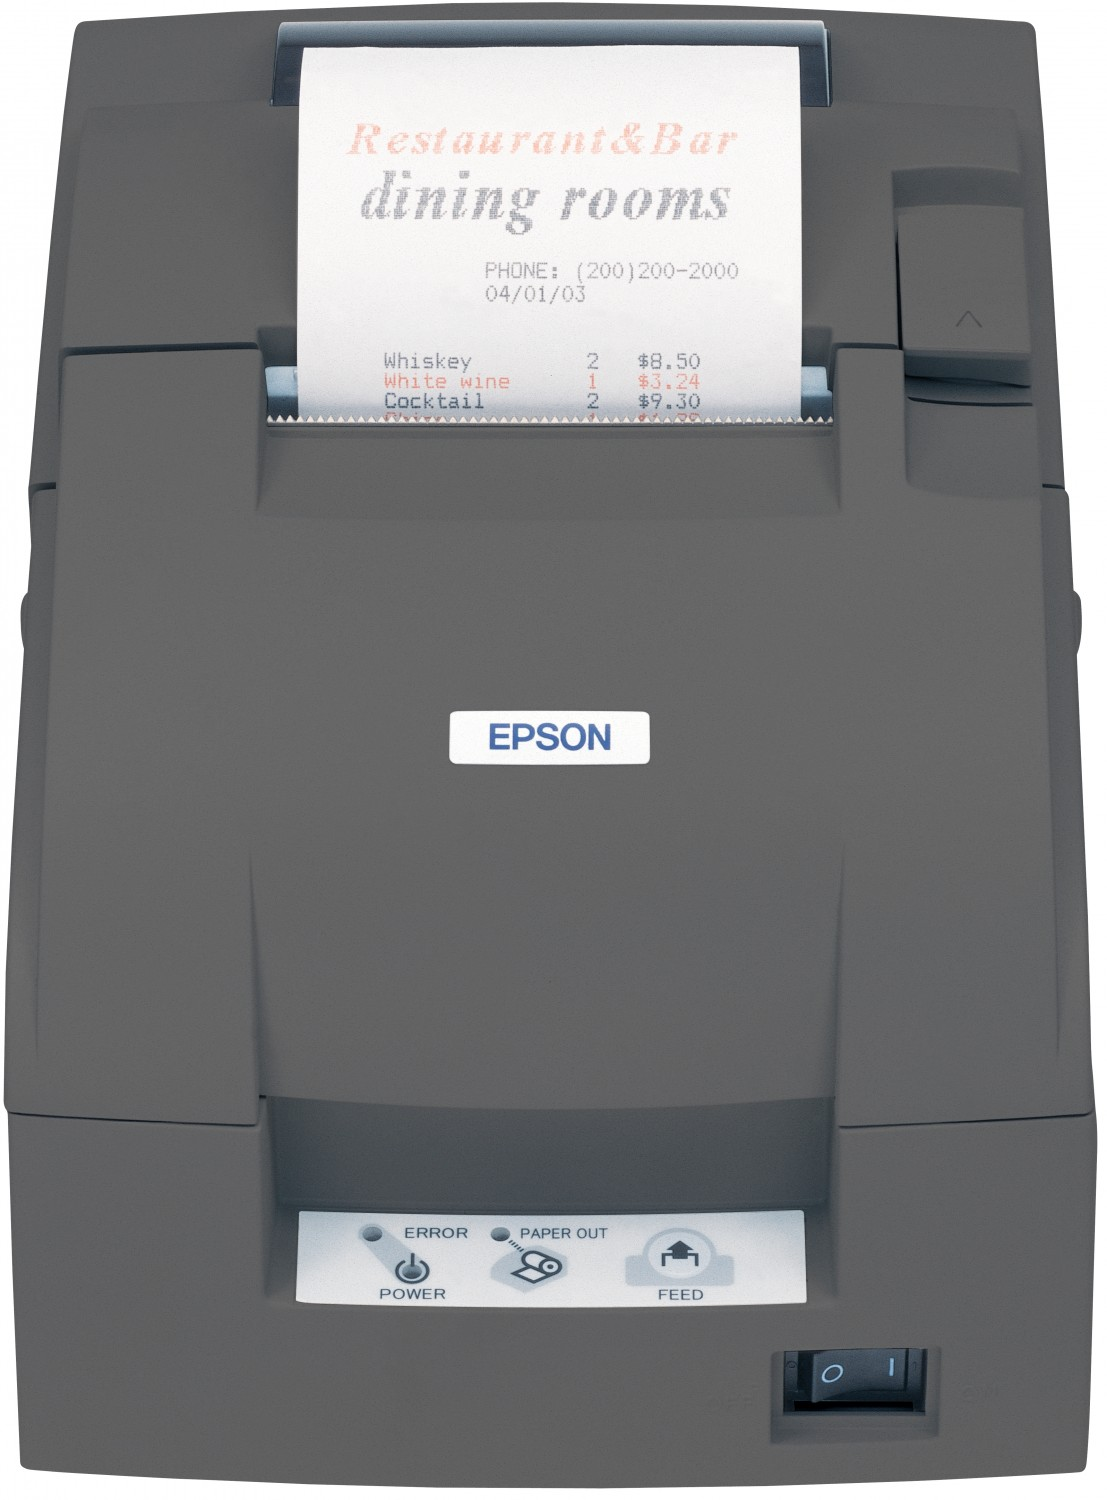 EPSON TM-U220D (052B0): USB+DMD, PS, EDG, EU